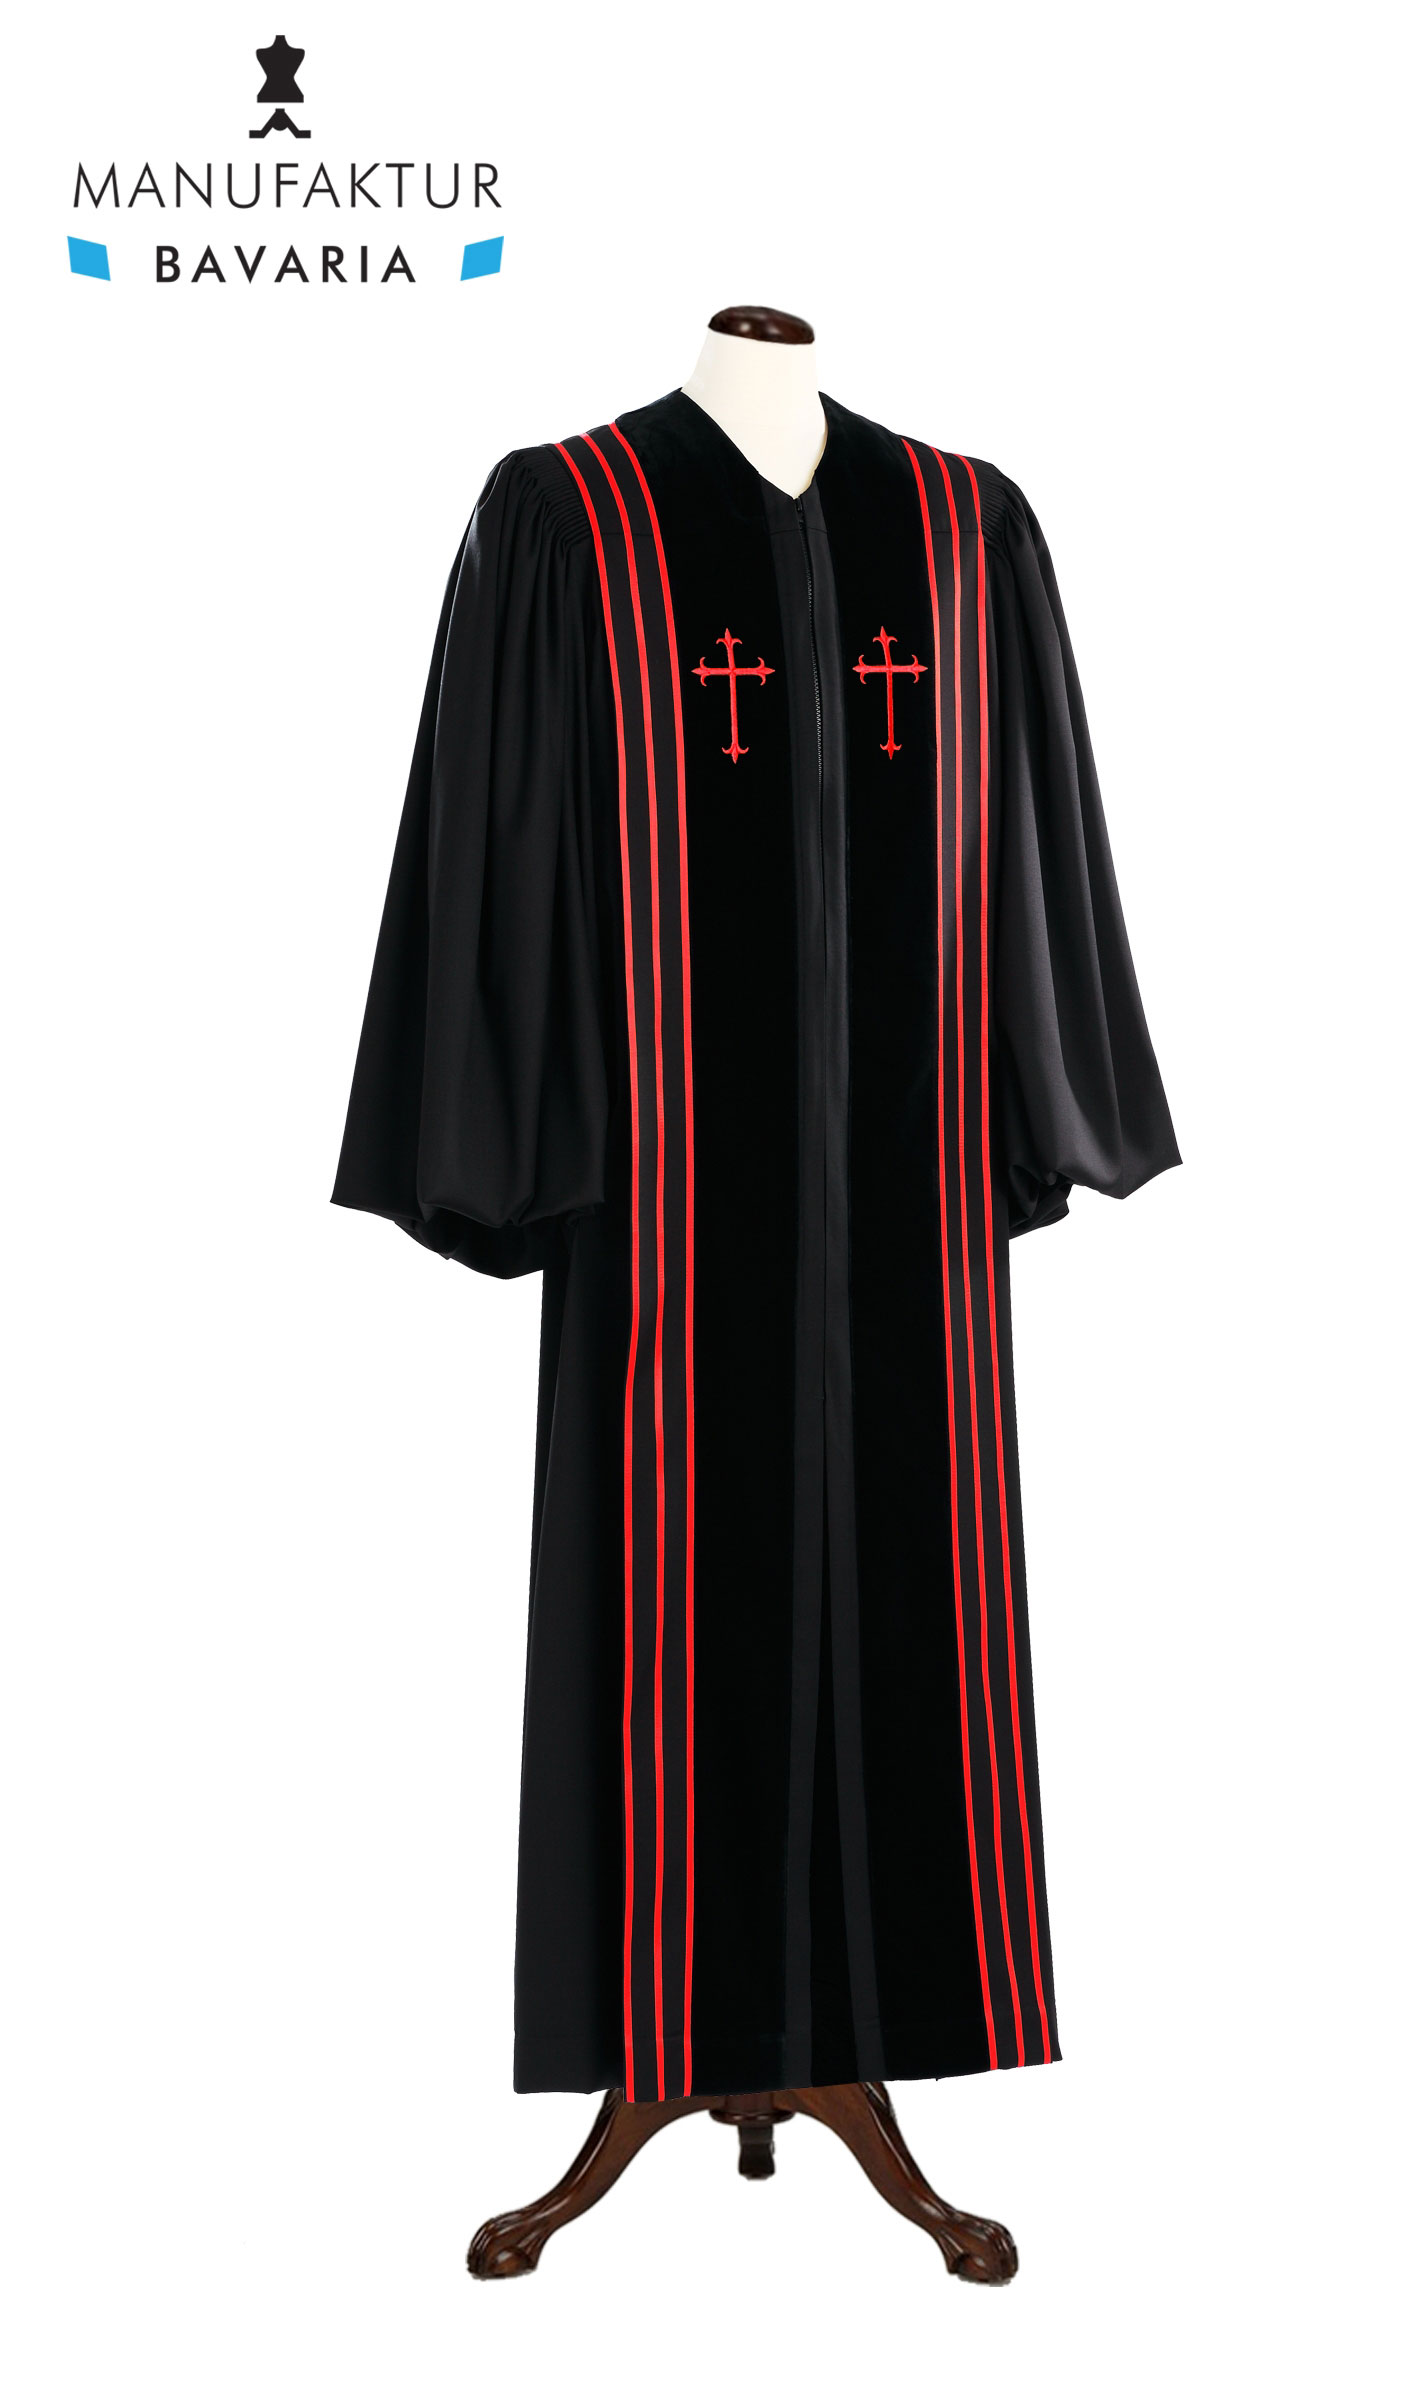 Bishop Clergy / Pulpit Robe, royal regalia